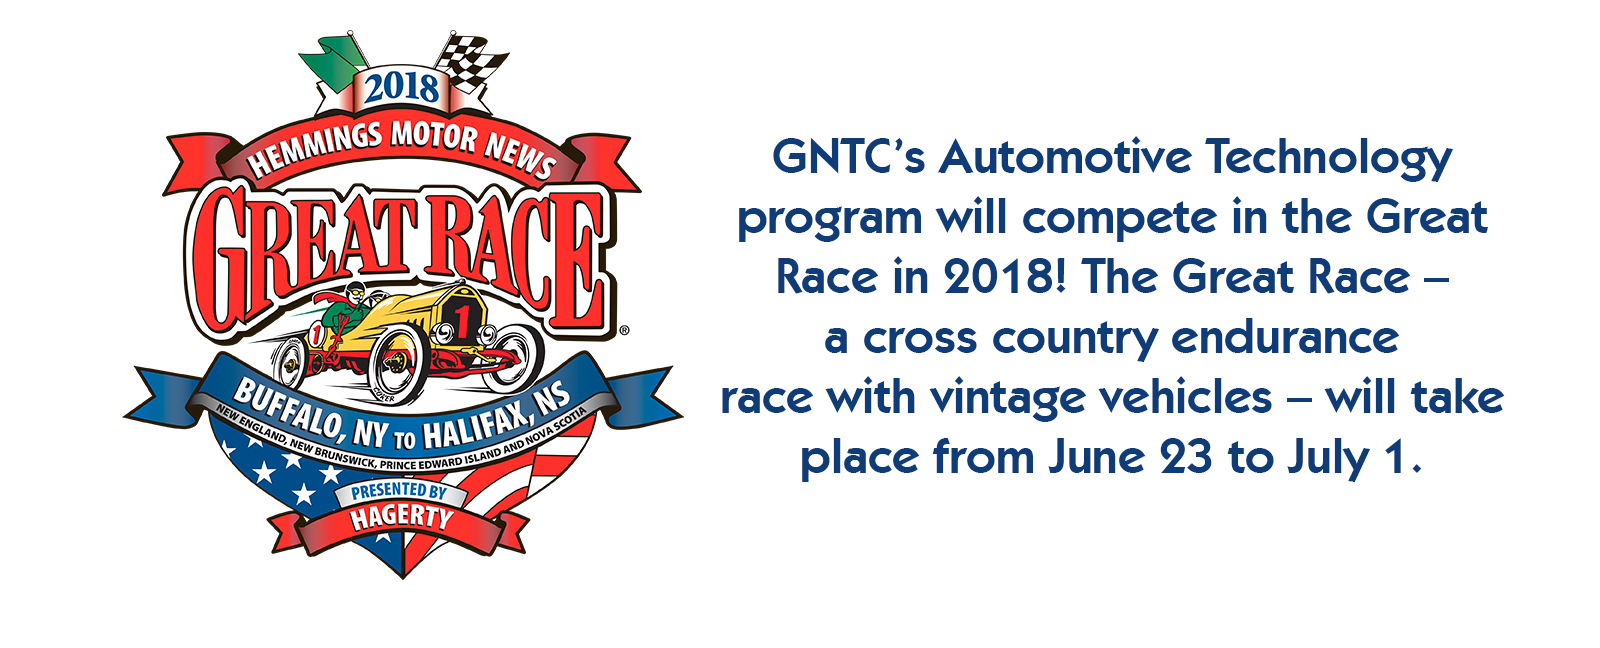 GNTC's Automotive Technology program will compete in the Great Race in 2018! The Great Race – a cross country endurance Grace with vintage vehicles – will take place from June 23 to July 1.